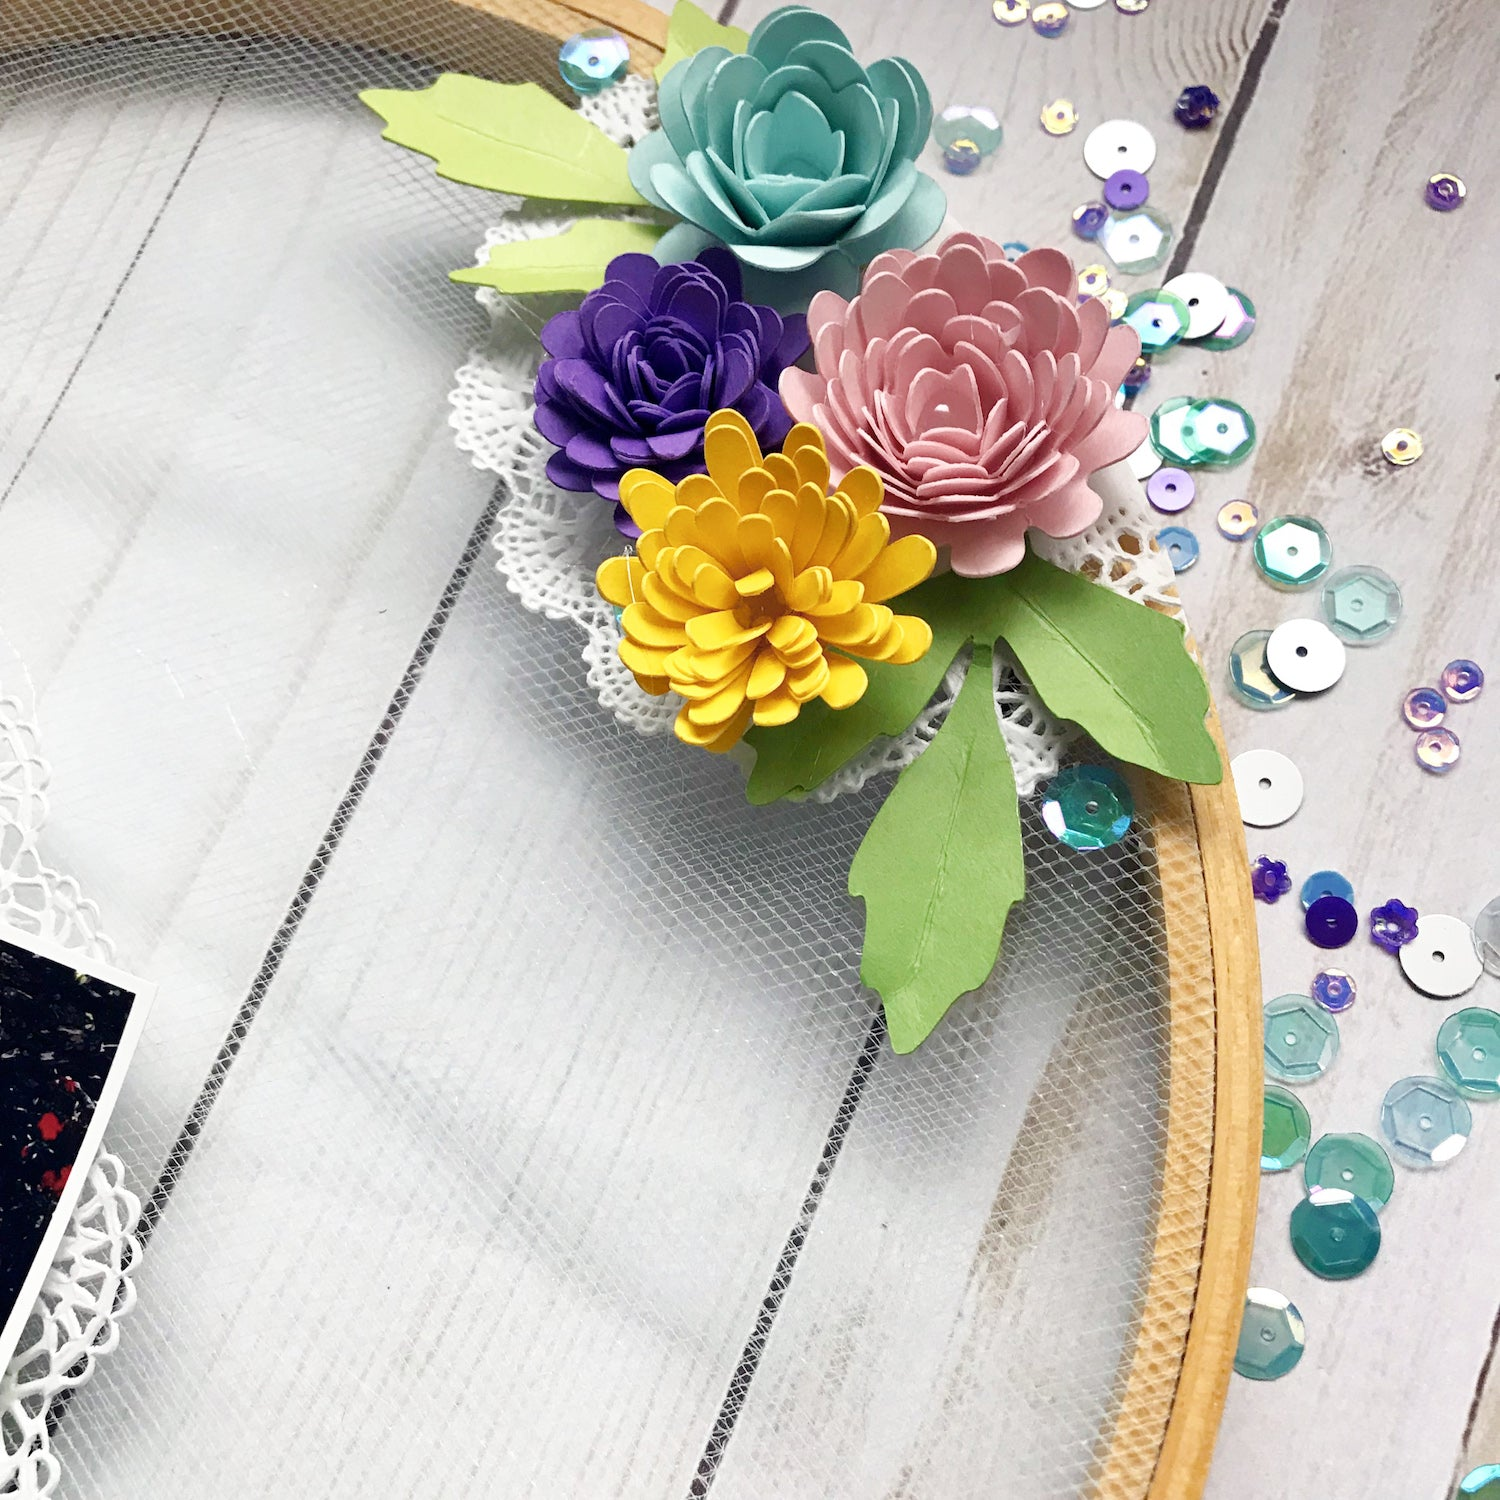 Embroidery Hoop Cardstock Paper Flowers Home Decor Scrapbook